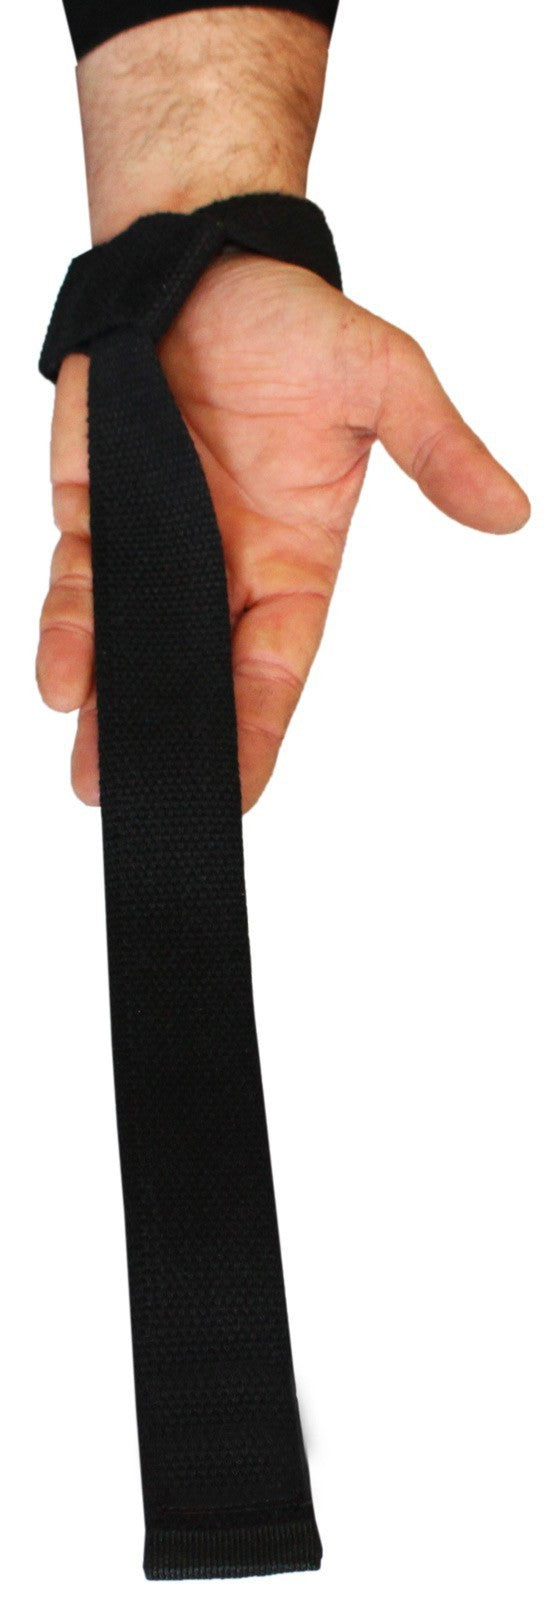 Extra Long Lifting Straps - Strength Shop USA